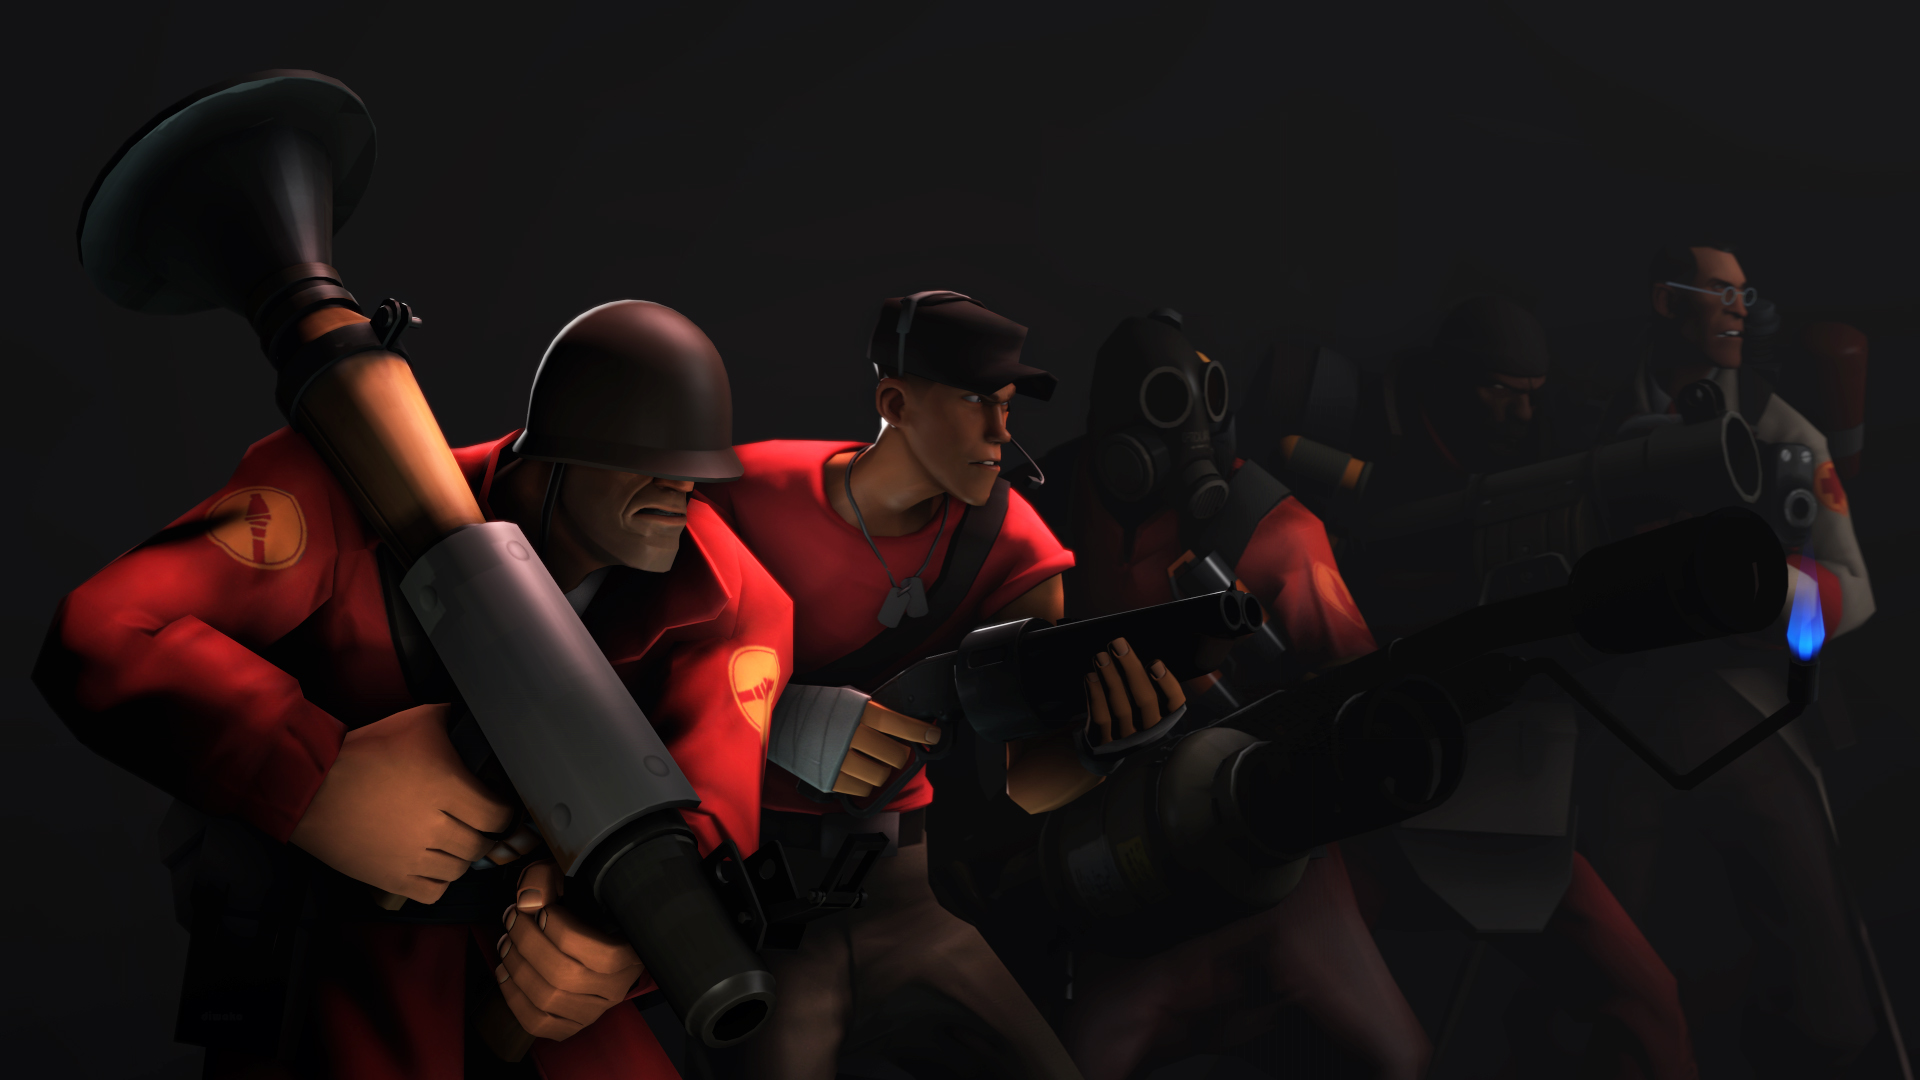 team fortress 2 wallpaper by diwako on deviantart